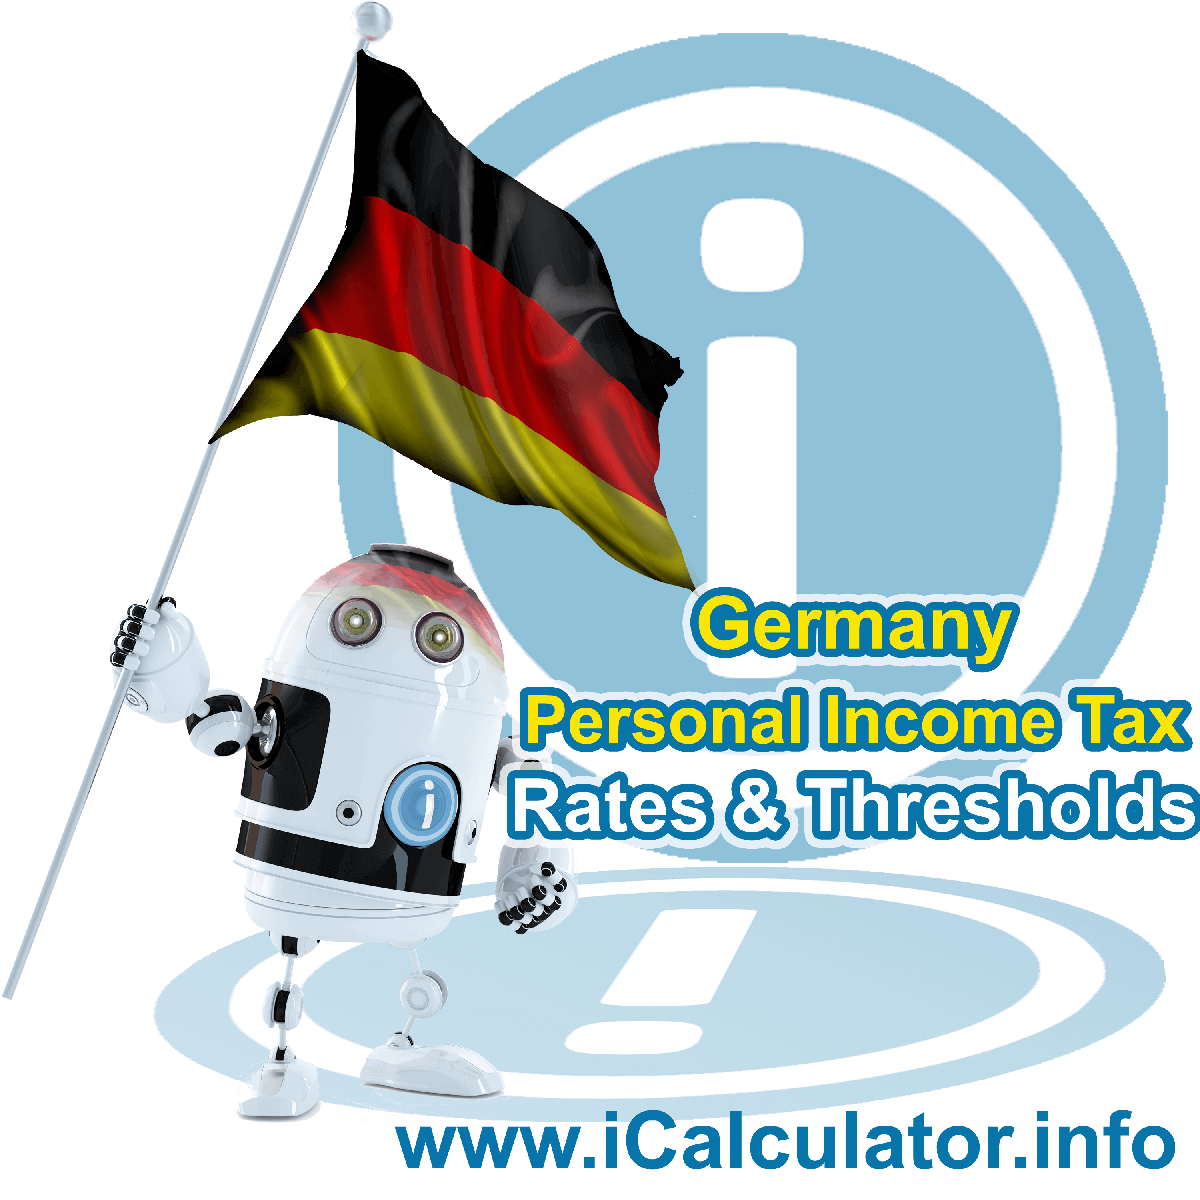 Germany Salary Calculator. This image shows the Germany flag and information relating to the tax formula for the Germany Tax Calculator